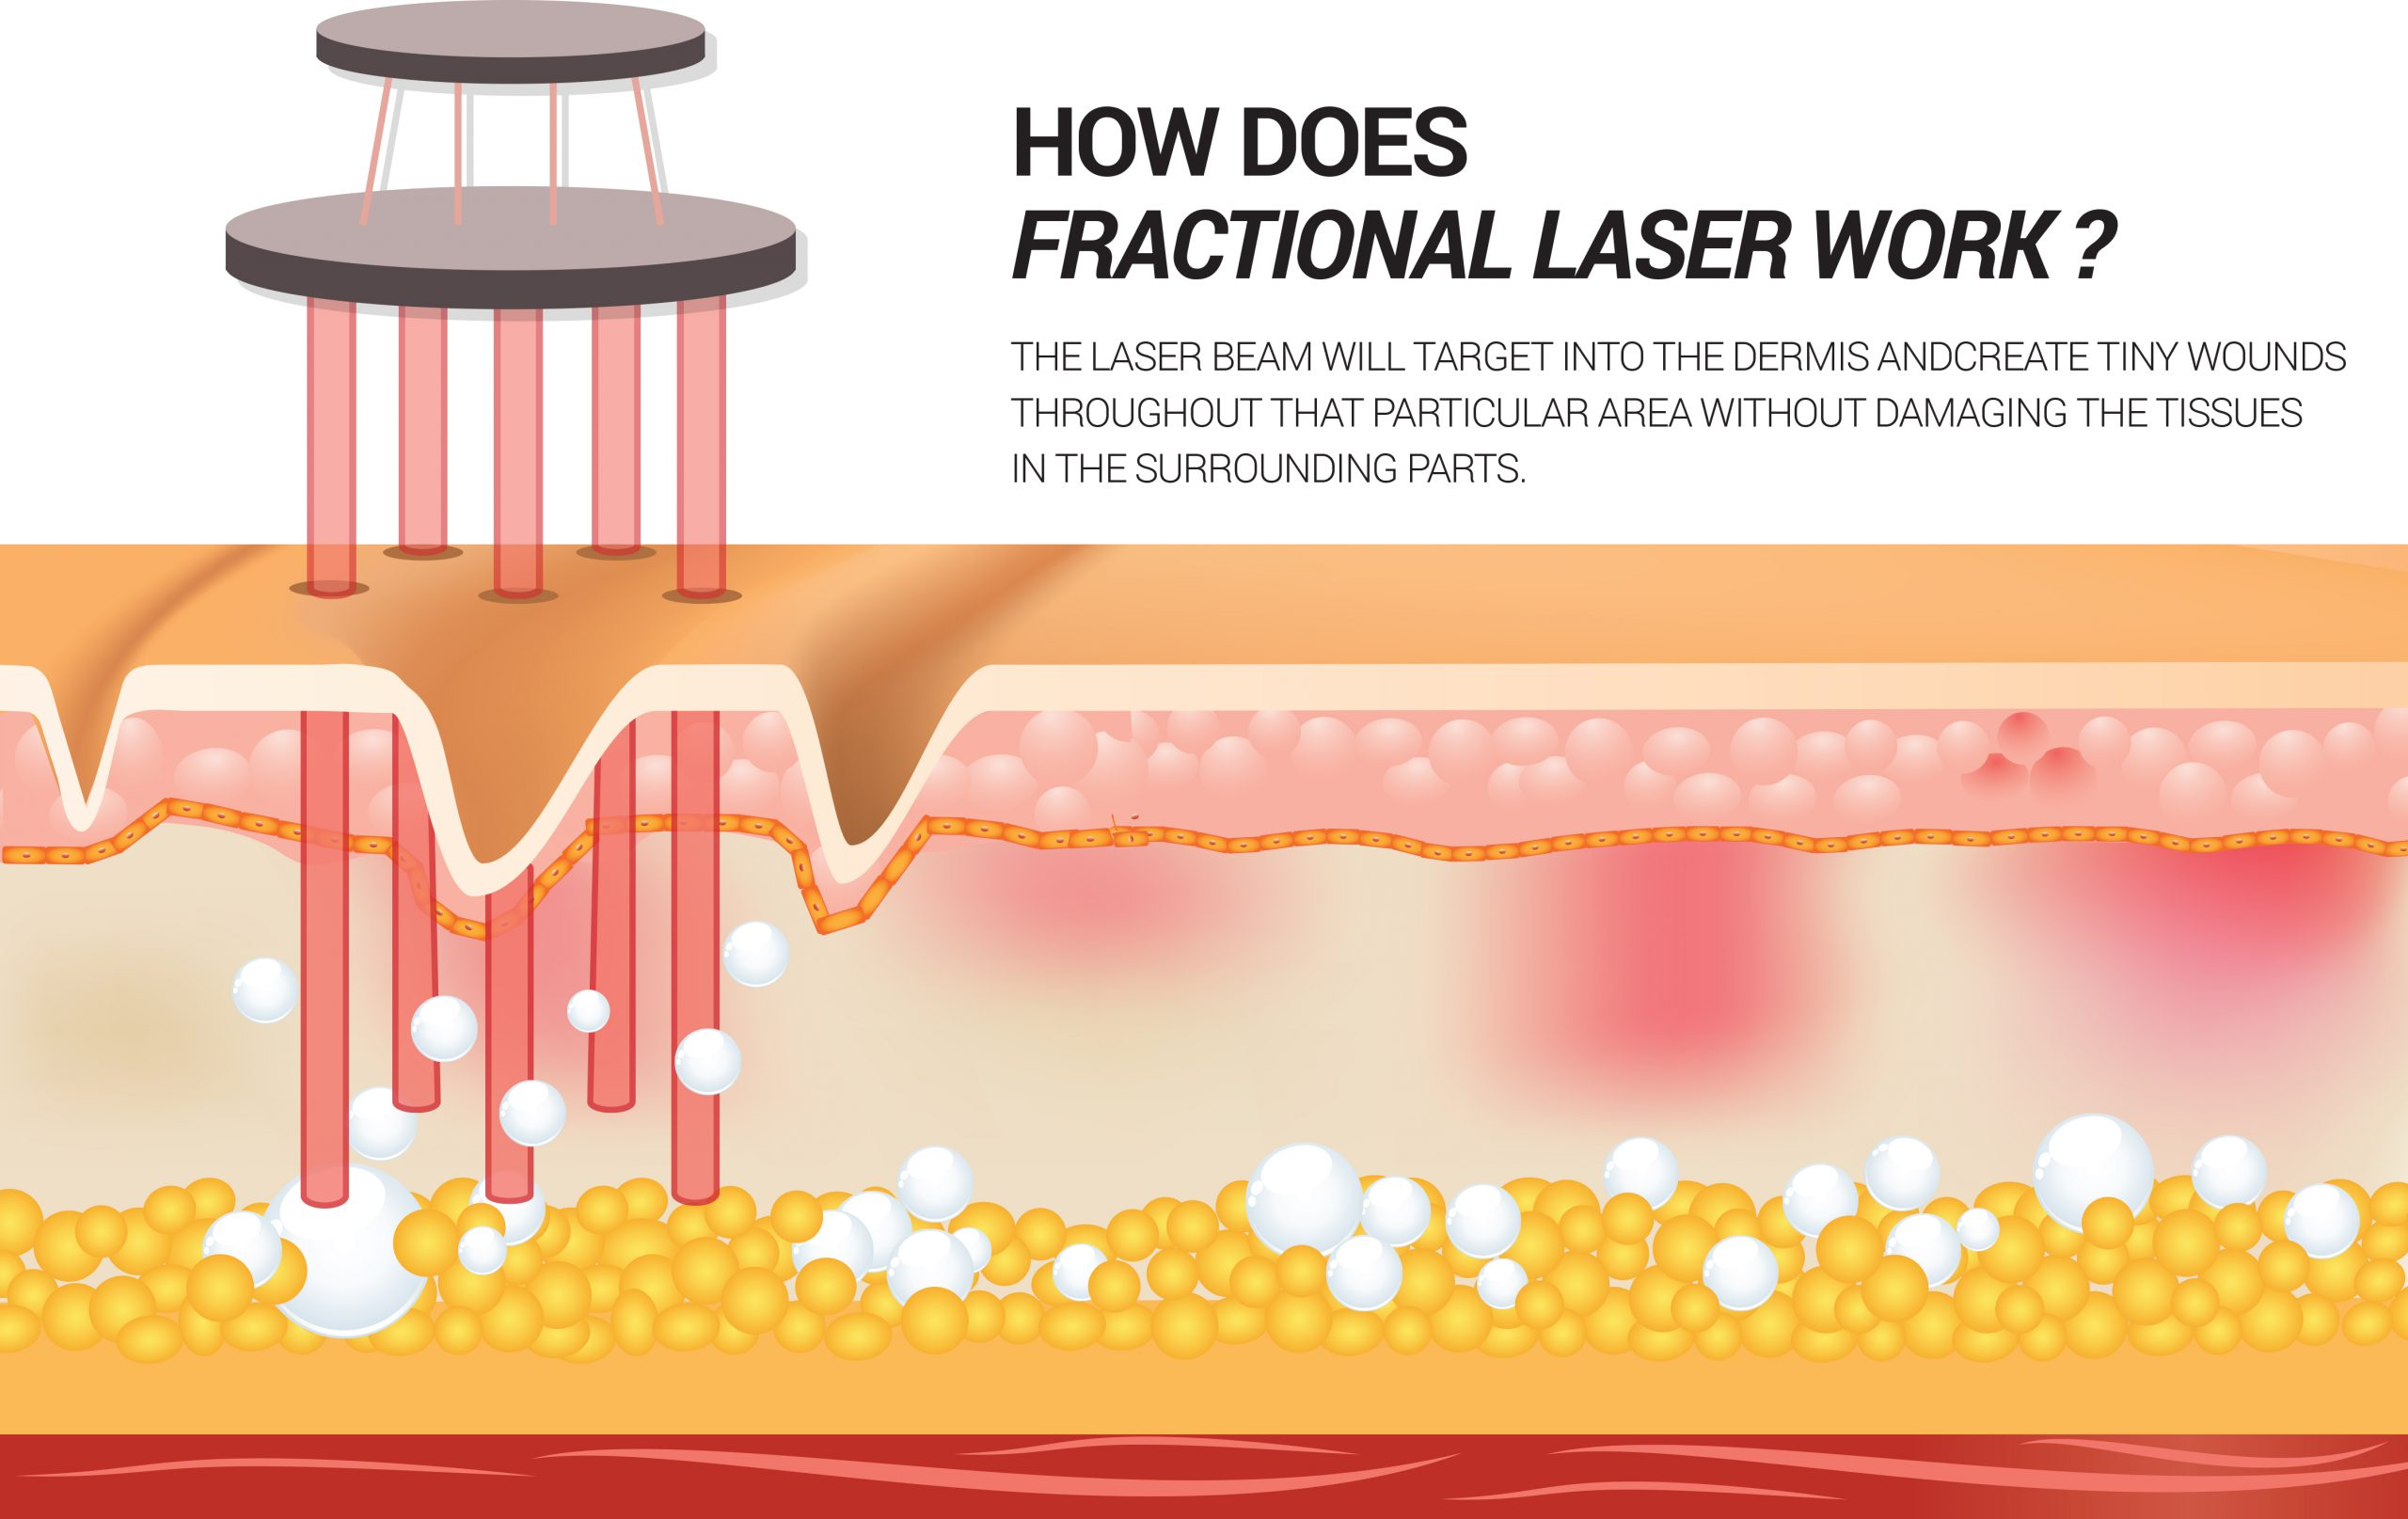 How does Fractional Laser work